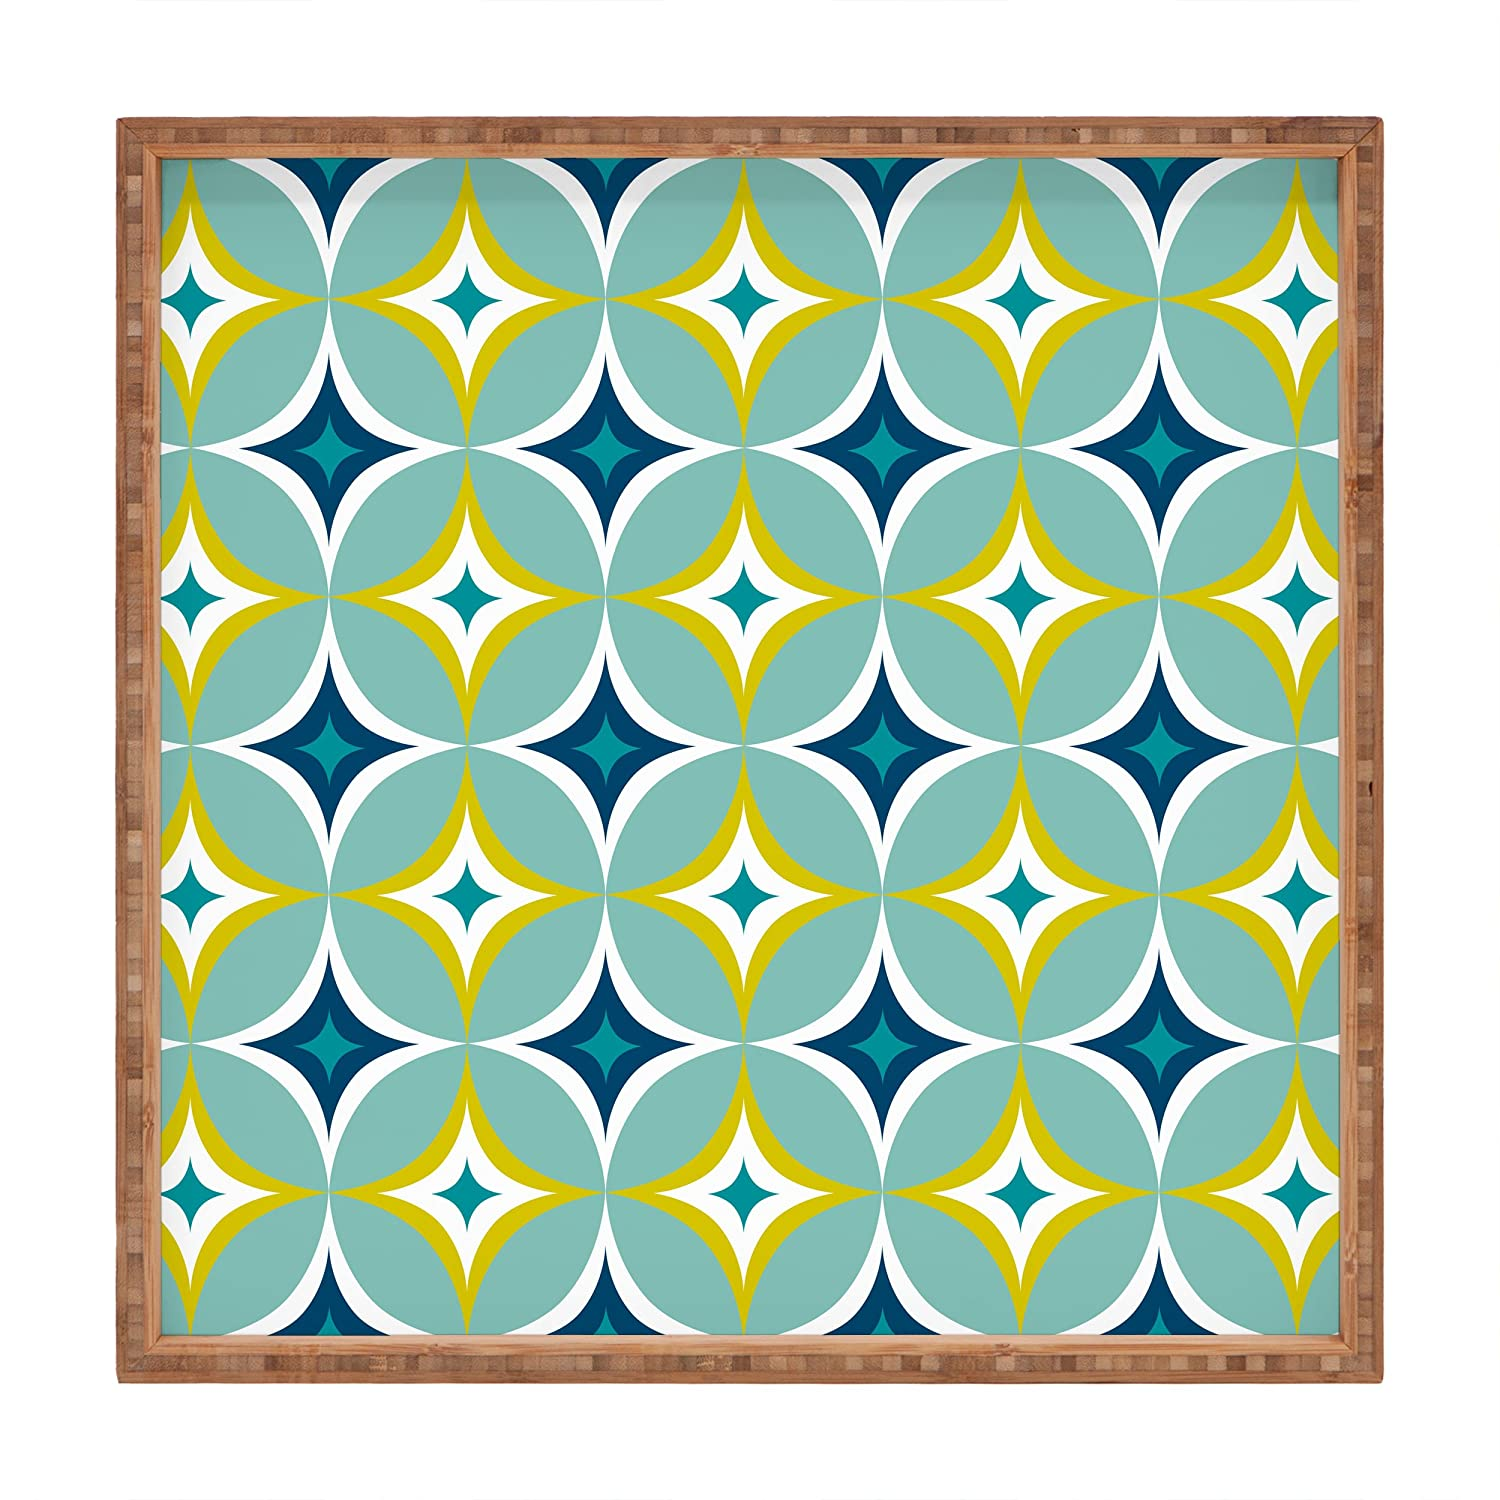 12 x 12 Deny Designs Heather Dutton Astral Slingshot Indoor//Outdoor Square Tray